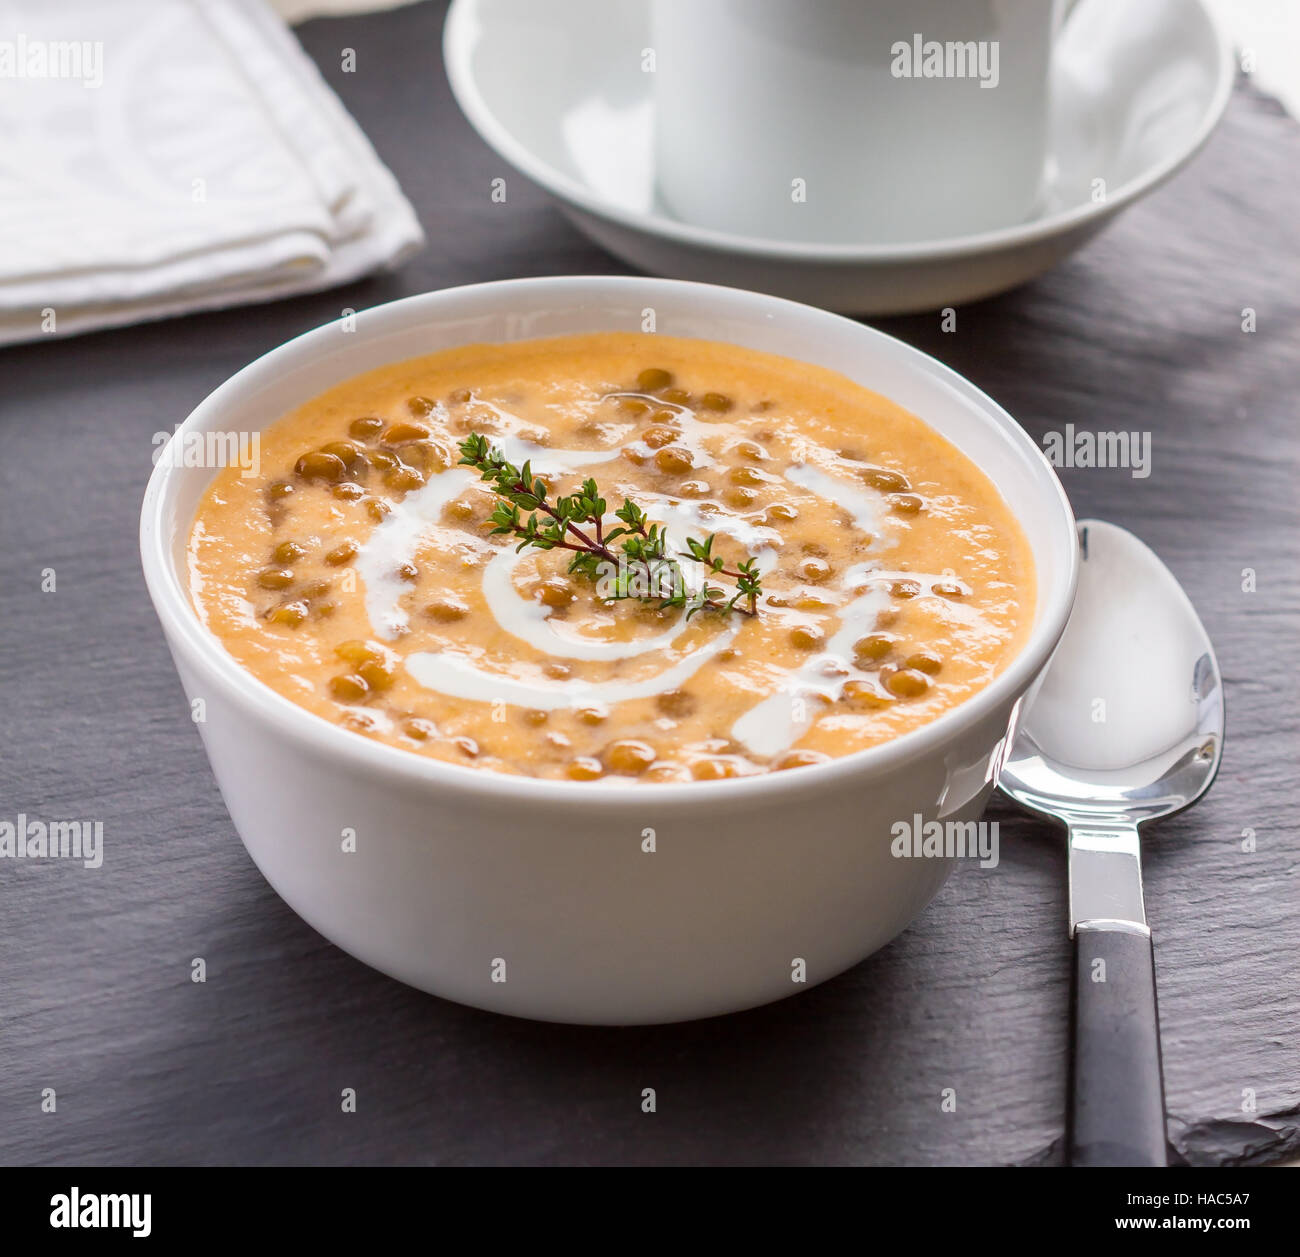 Homemade lentil and rice soup in a bowl Stock Photo